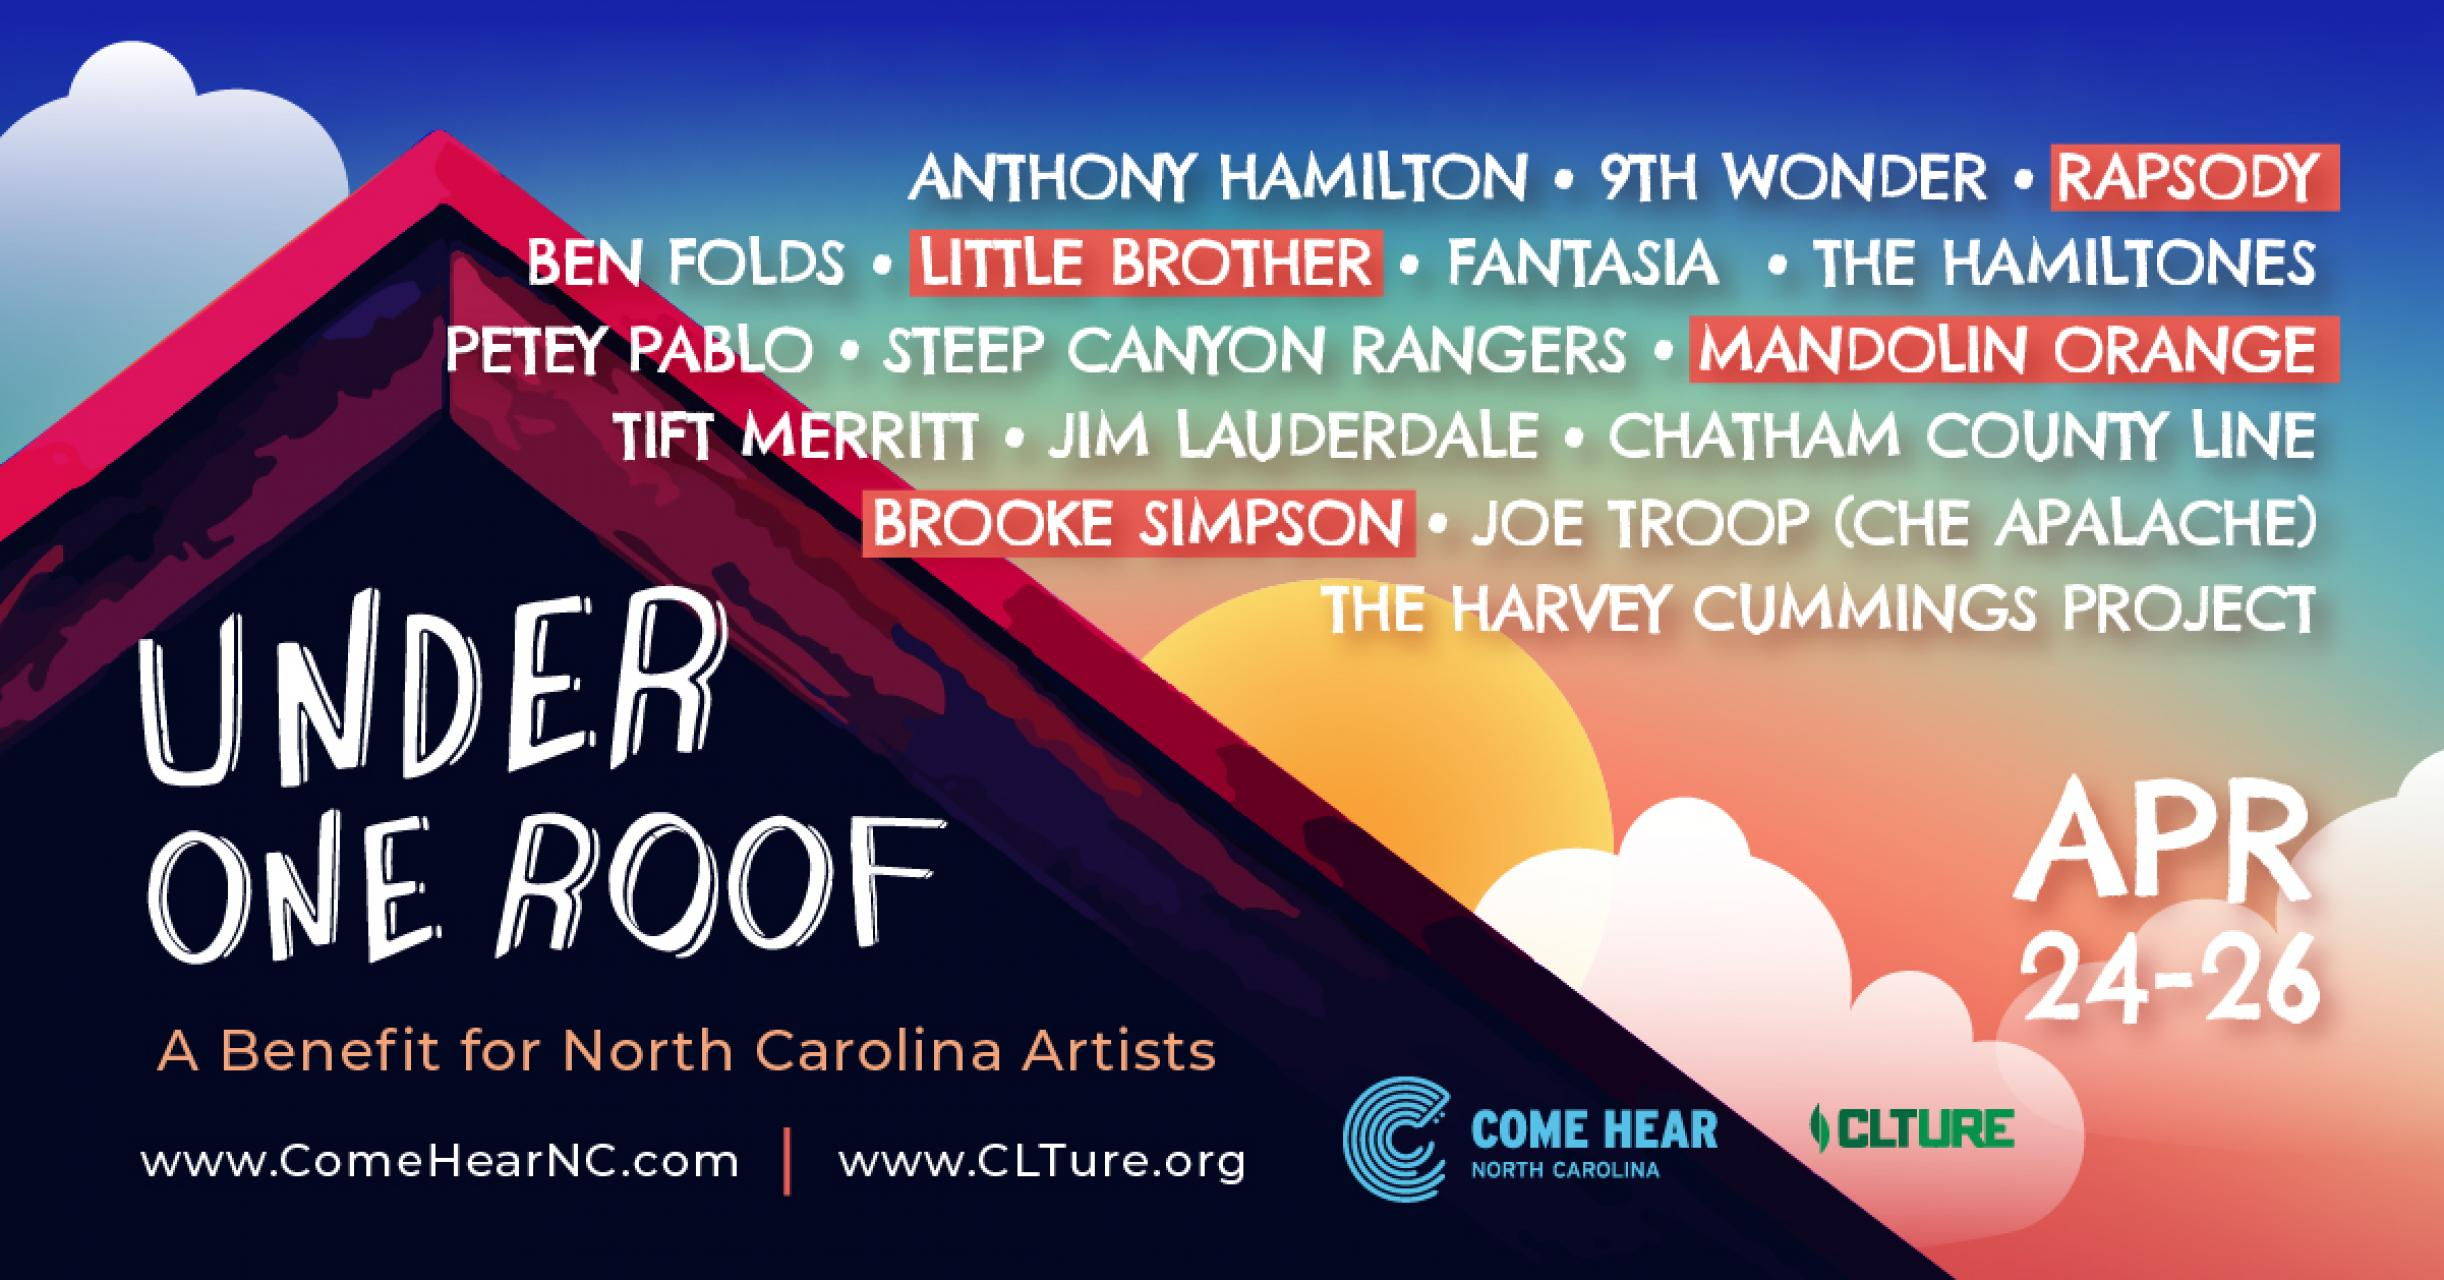 Under One Roof Music Festival Graphic With Line-Up Information